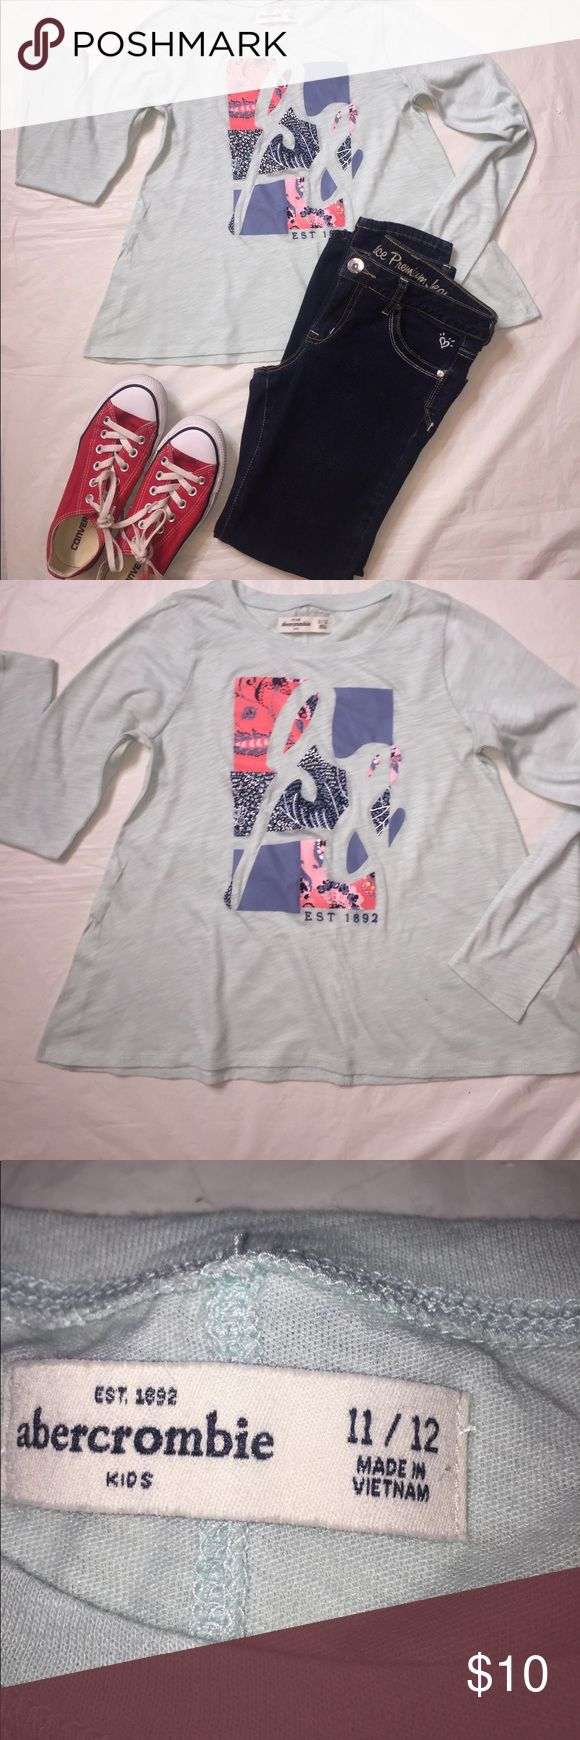 Abercrombie girls long sleeve tee Abercrombie girls long sleeve light blue tee in great condition.size 11-12 and sleeve 21 1/2 and length 20 Abercombie Kids Shirts & Tops Tees - Long Sleeve